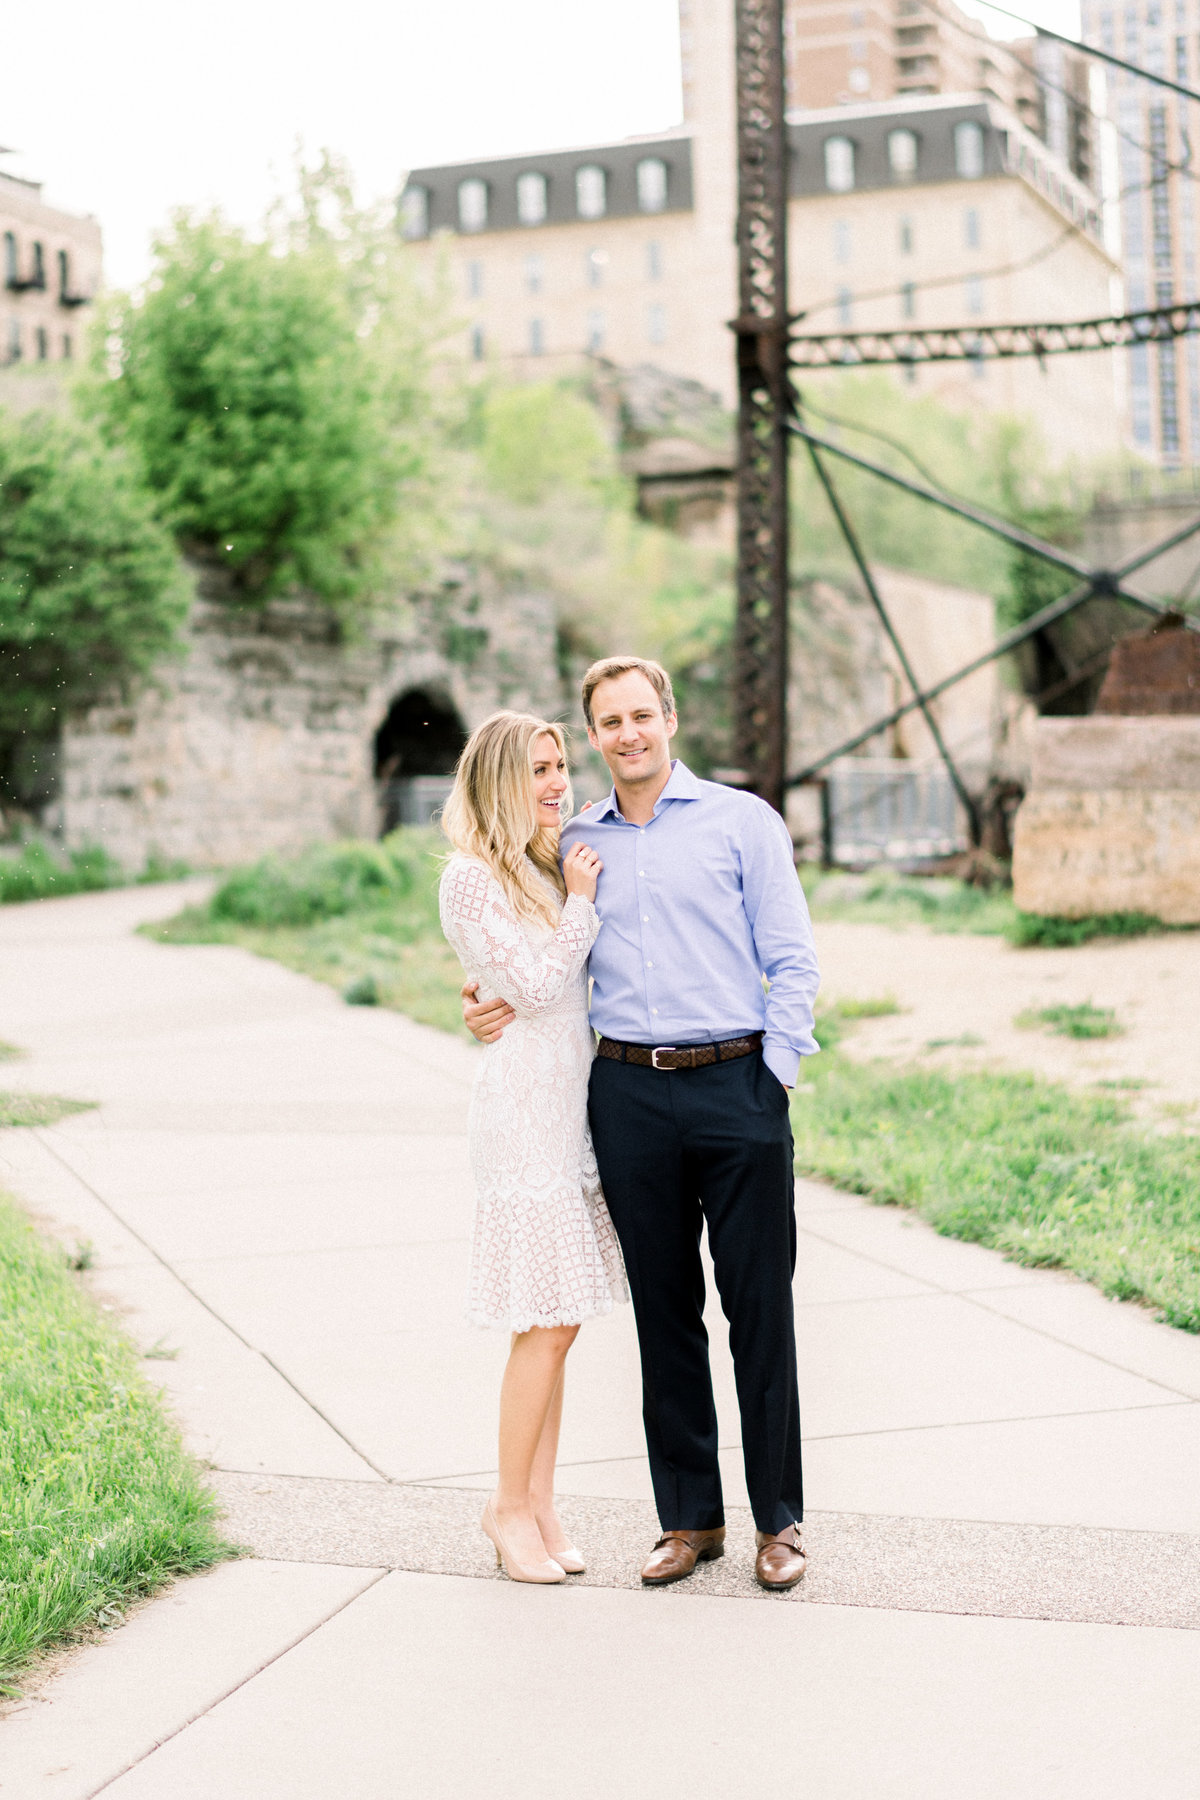 Trish Allison Photography Wedding Engagement Newborn Lifestyle Minneapolis St. Paul Twin Cities Fine Art Light Airy Photographer Trish Burtzel2